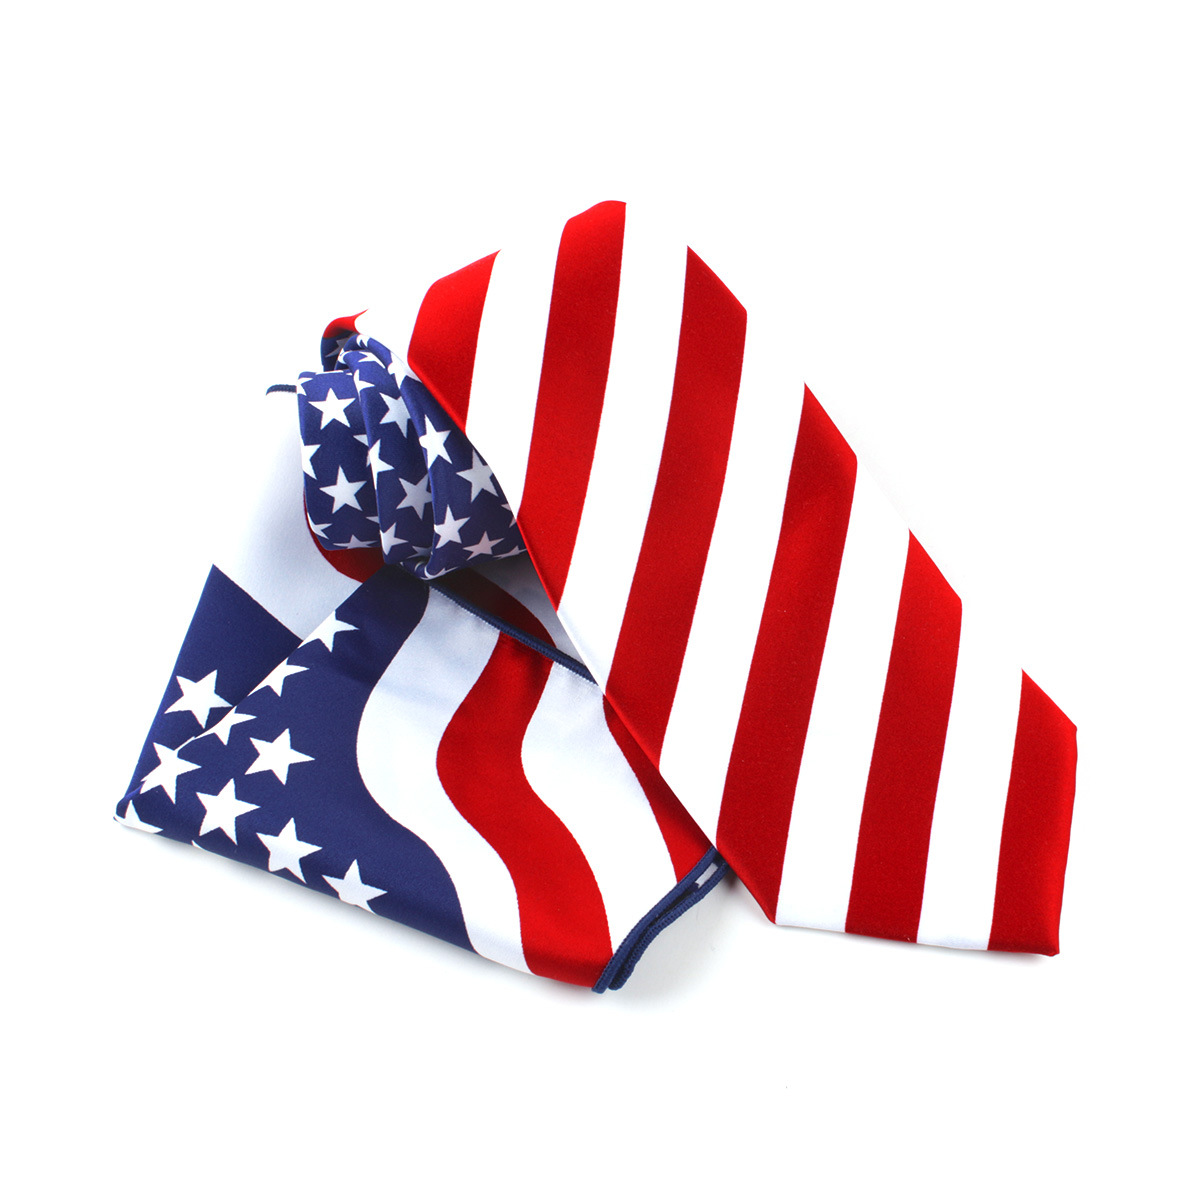 847 Dress and tie Mens American flag and tie Mens business 8cm T